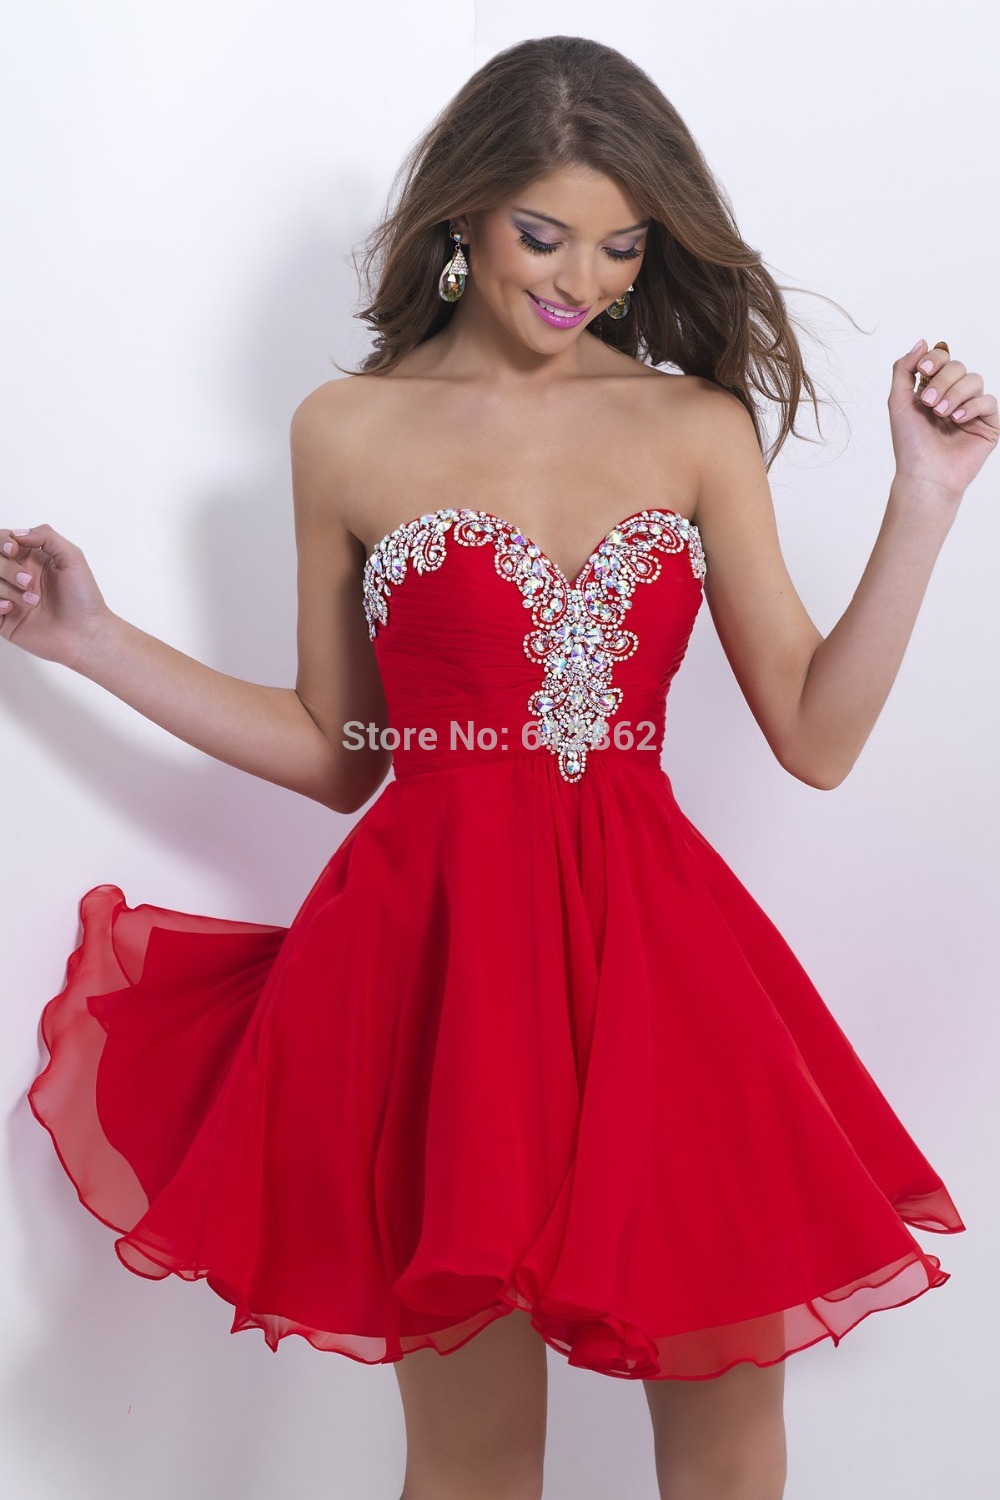 Cute Short Red Dresses - Dress Yp